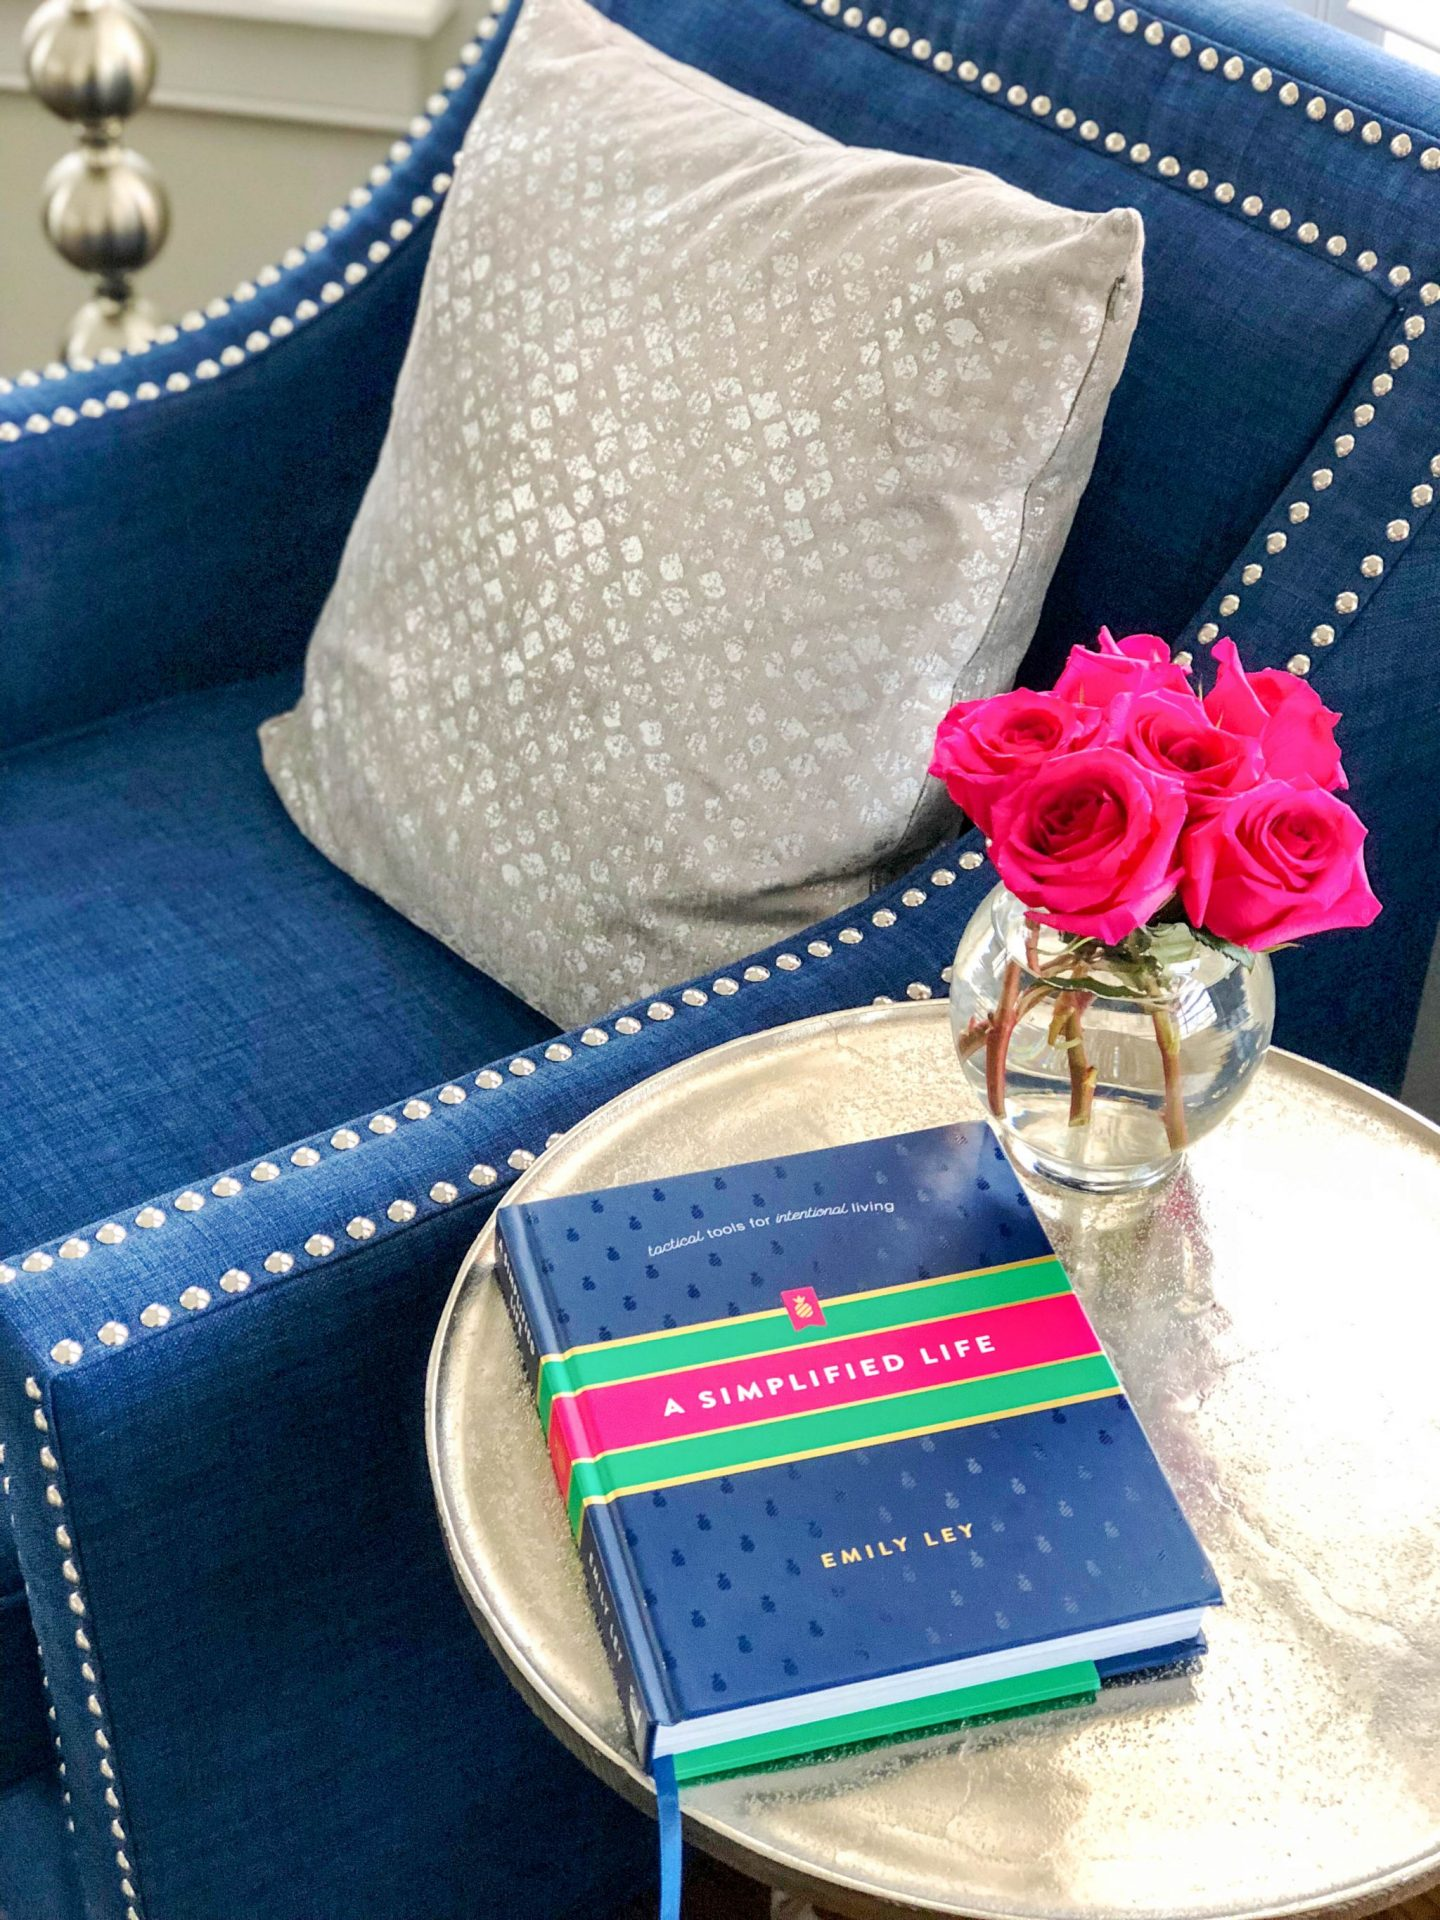 Three Tips I Gained From Emily Ley's A Simplified Life Book